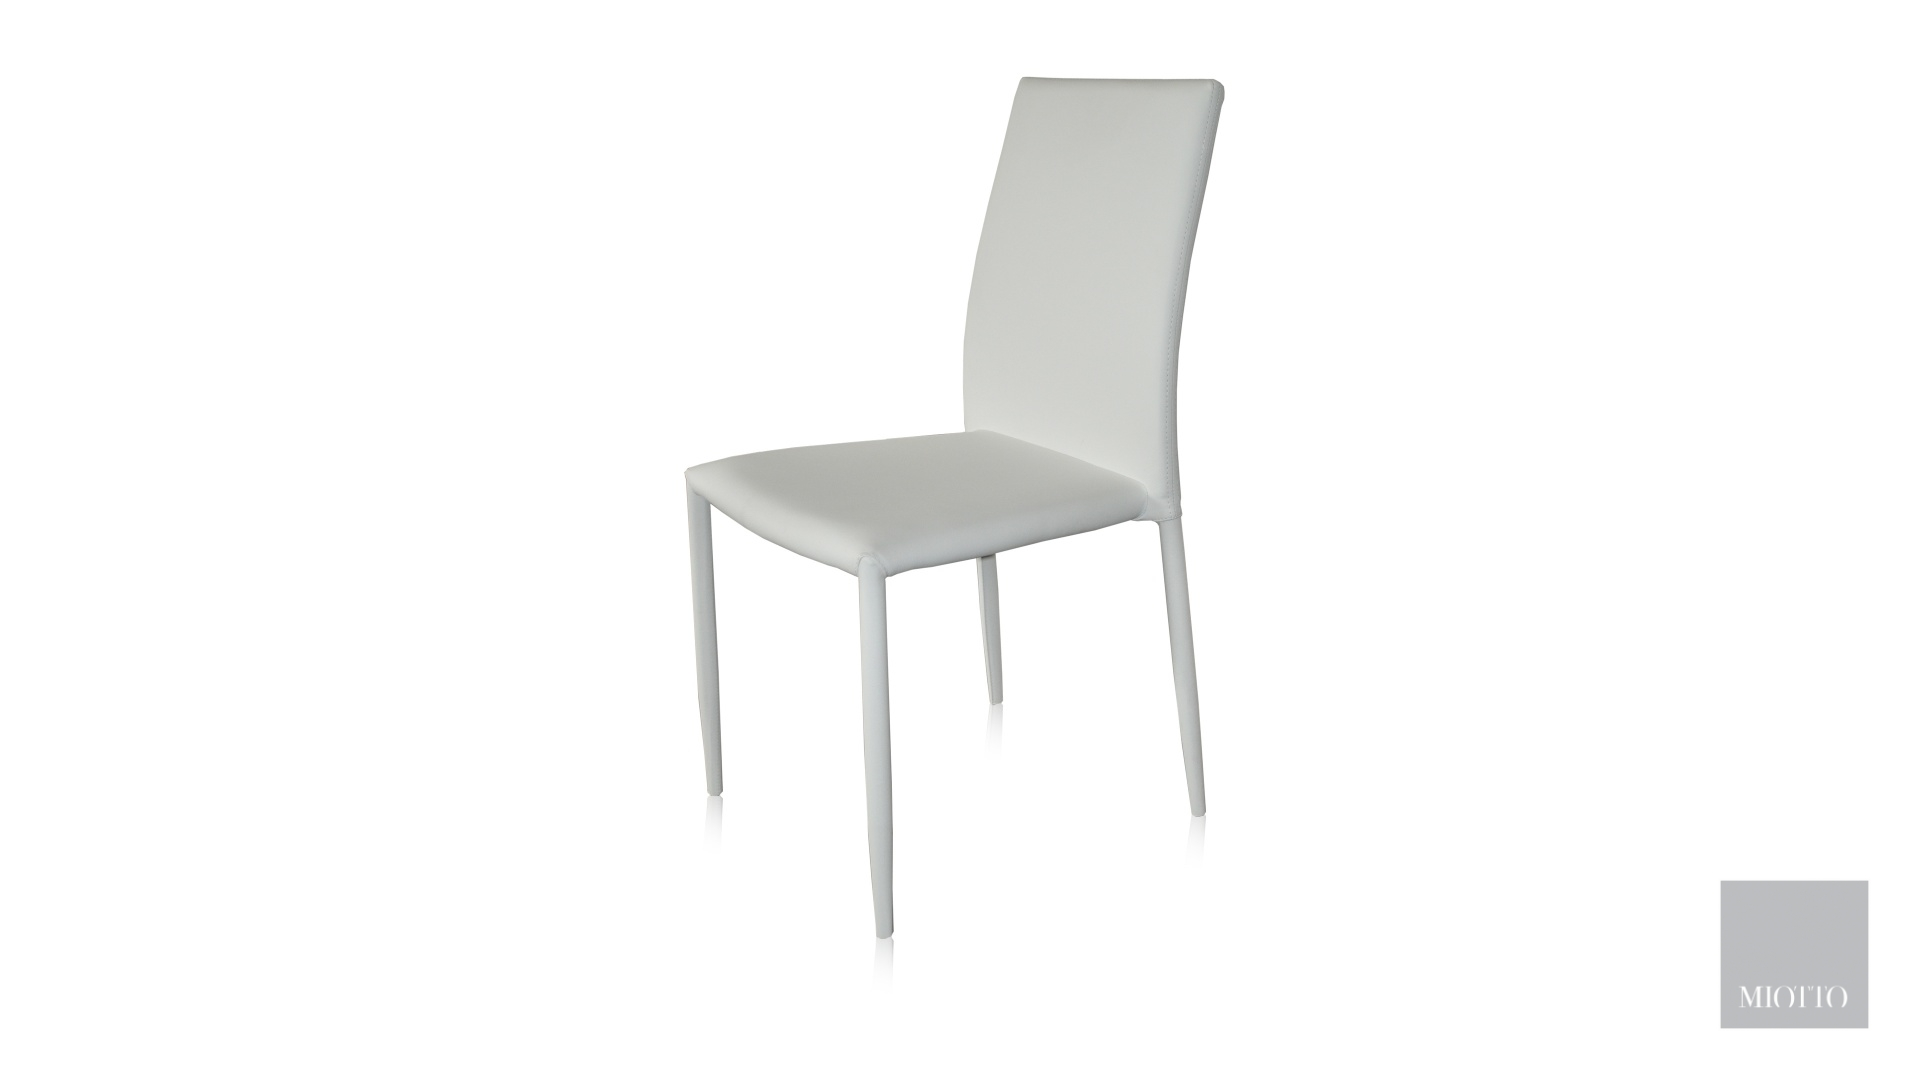 miotto_Lara dining chair pu white front miotto furniture